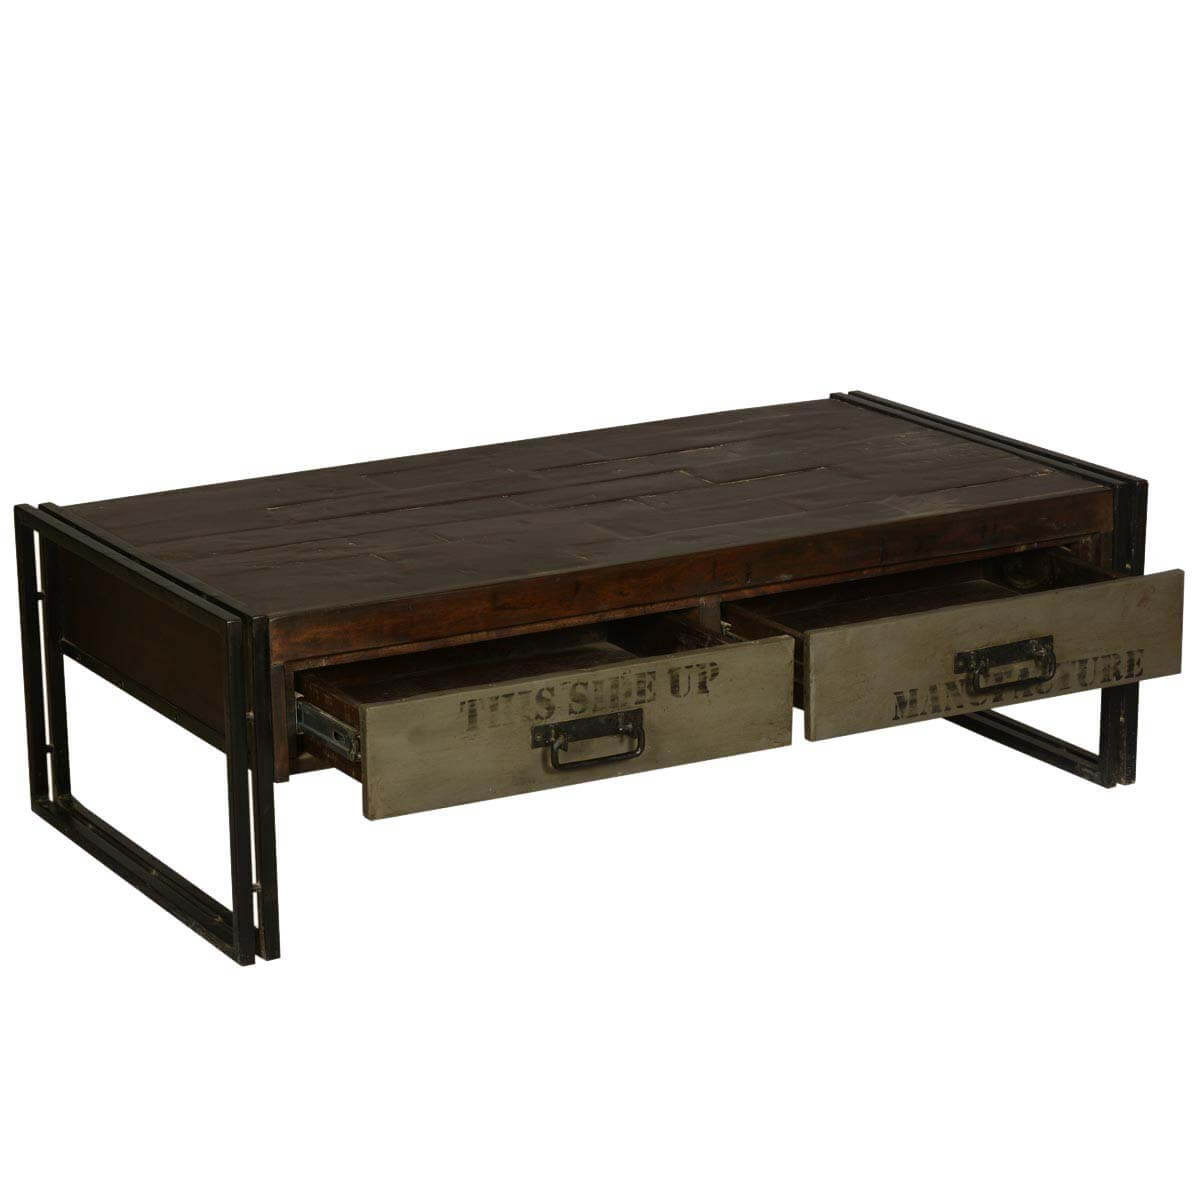 Philadelphia modern rustic reclaimed wood metal coffee table for Wire coffee table